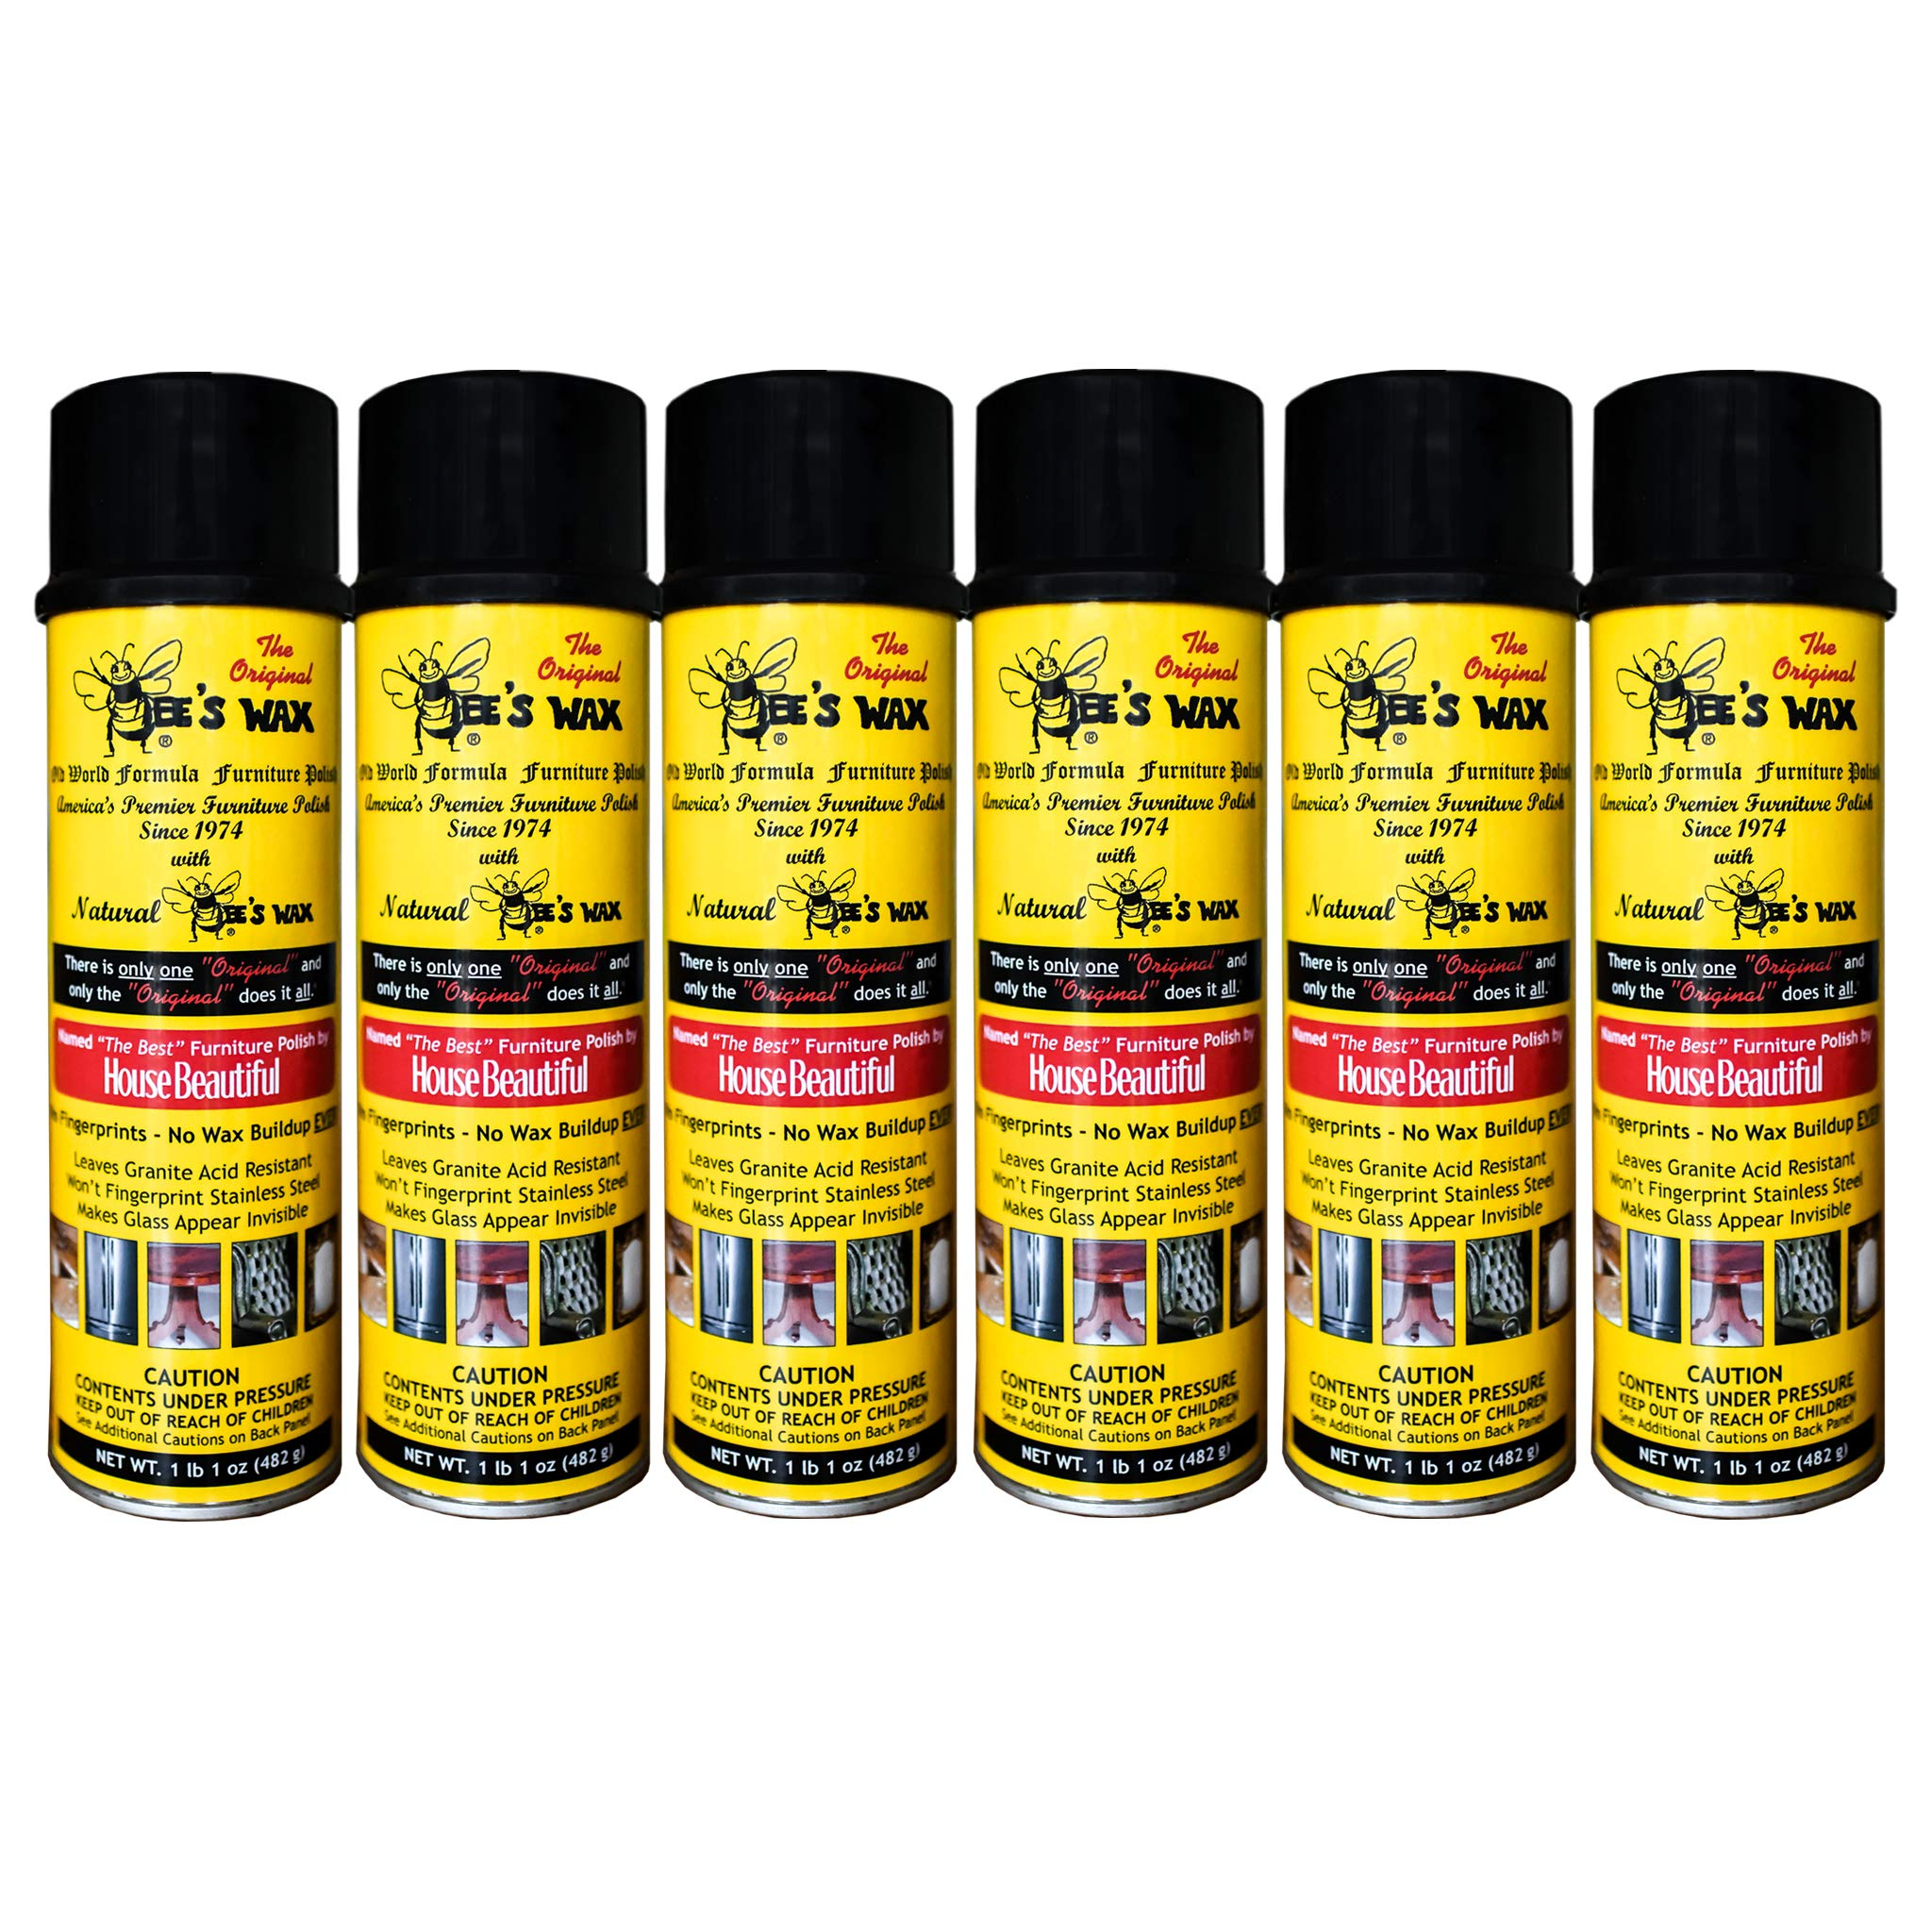 The Original Bee's Wax Old World Formula Furniture Polish - 6 Pack by World Class Promotions